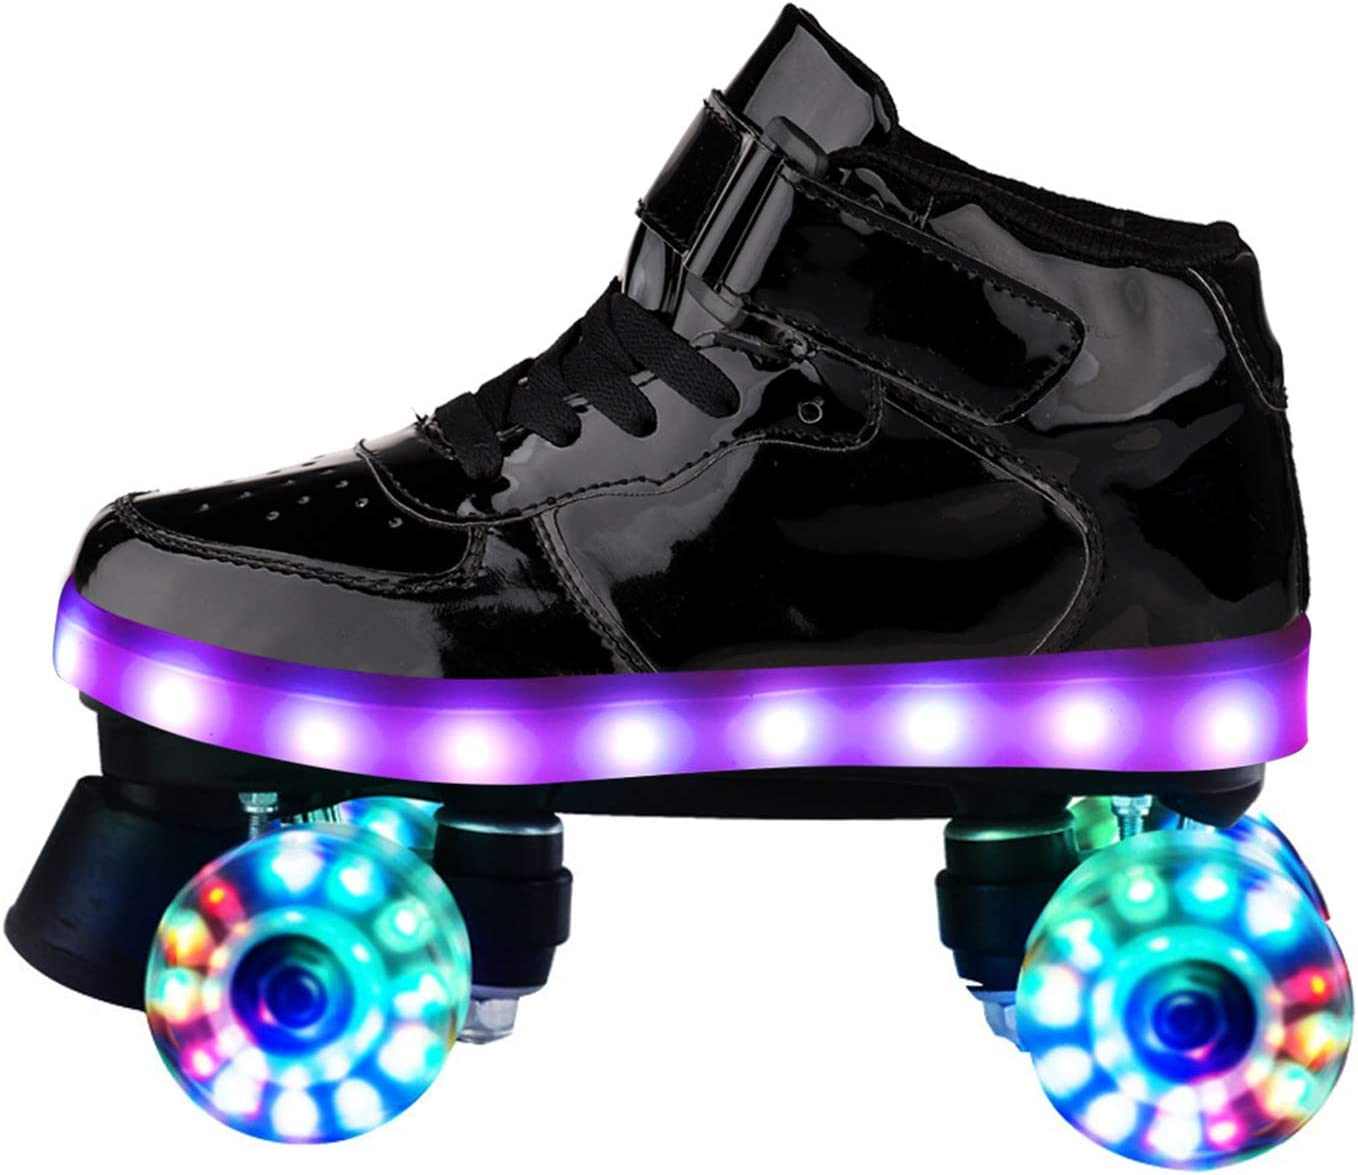 Cool Flash PU Wheel Double Row 4-Wheel Roller Skates Street Skateboarding Leather Boot Quad Roller Skates for Kids and Adult Woman with LED Lights